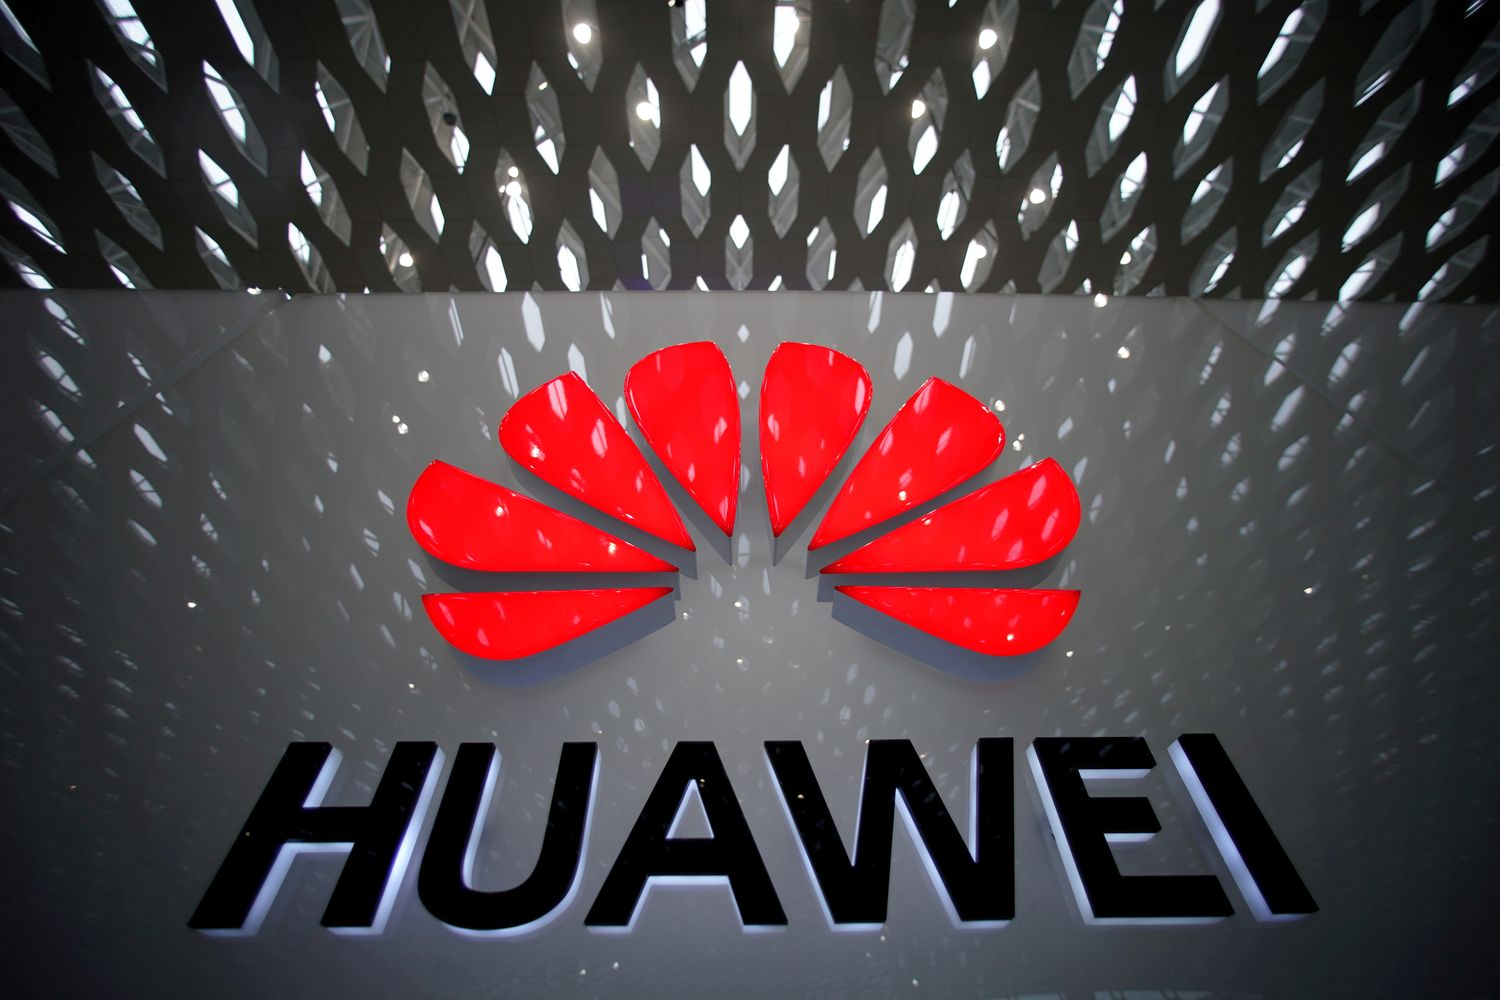 US to extend relief to Huawei for 90 days